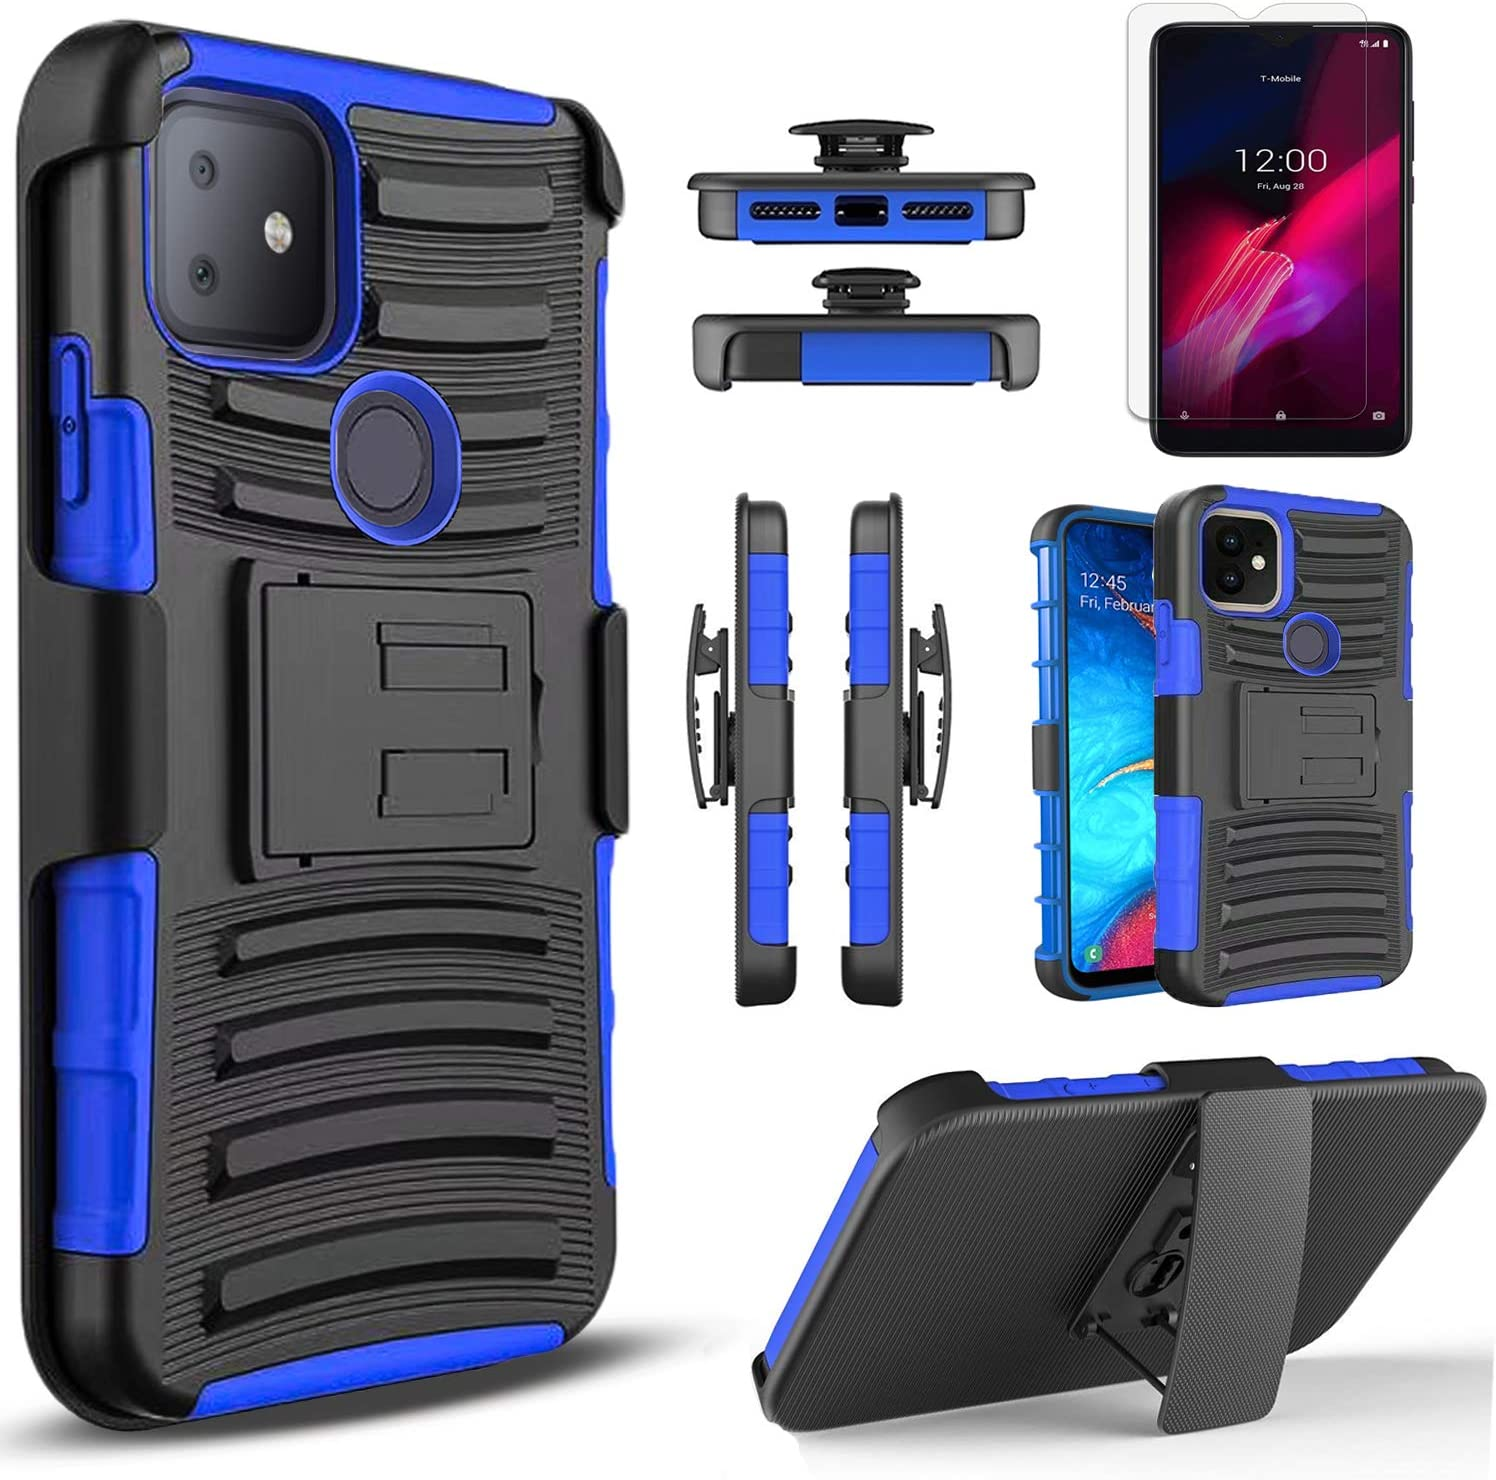 Circlemalls - T-Mobile Revvl 4 Plus Phone Case, [Not Fit Revvl 4] With [Tempered Glass Screen Protector Included], Armor Heavy Duty Kickstand Cover With Belt Clip Holster - Blue